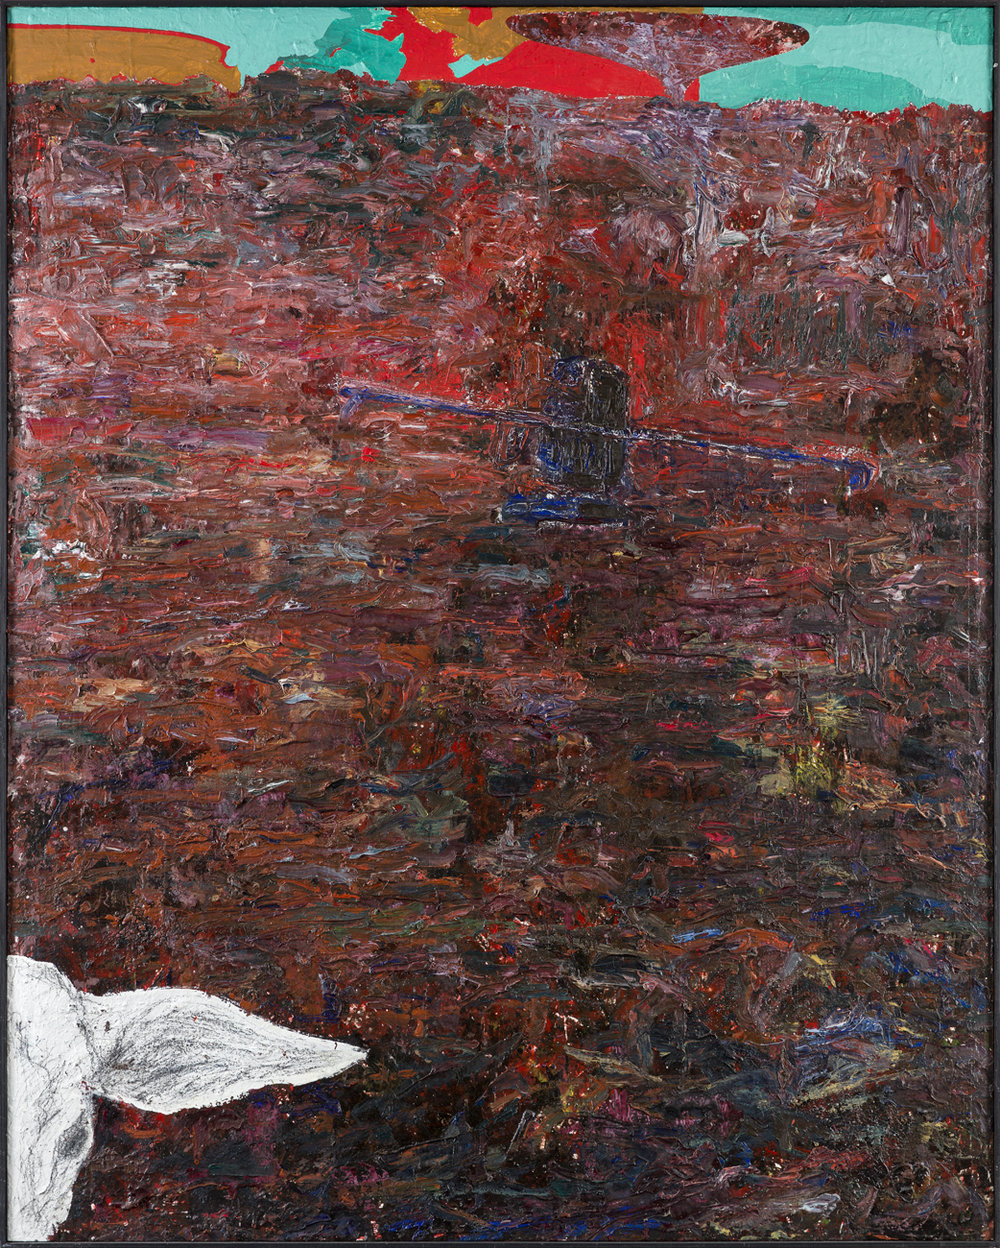 Max Mikael Book  Porovia  1986-87 Oil on canvas 150 x 120 cm